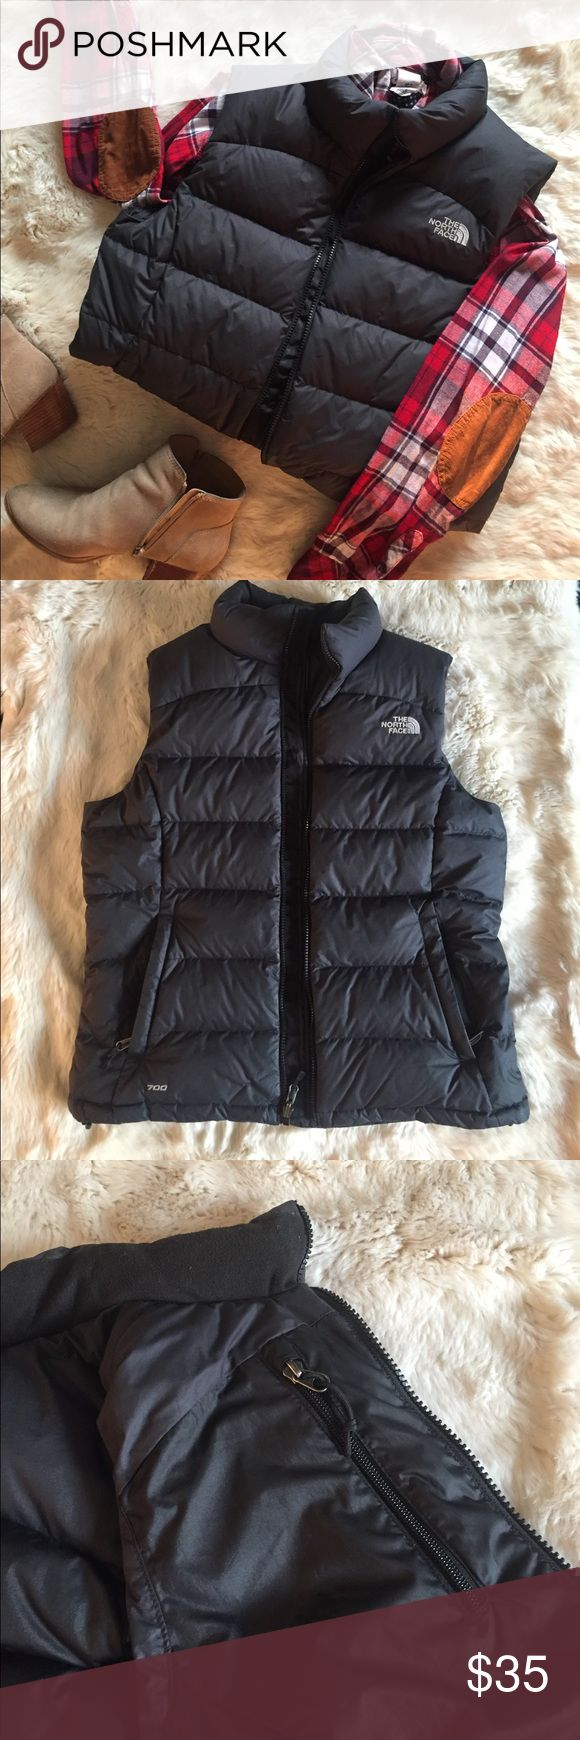 North Face Black Puffer (Goose Down) Vest North Face black puffy vest, perfect for fall and winter. (Size L, fits true to size). The North Face Jackets & Coats Vests